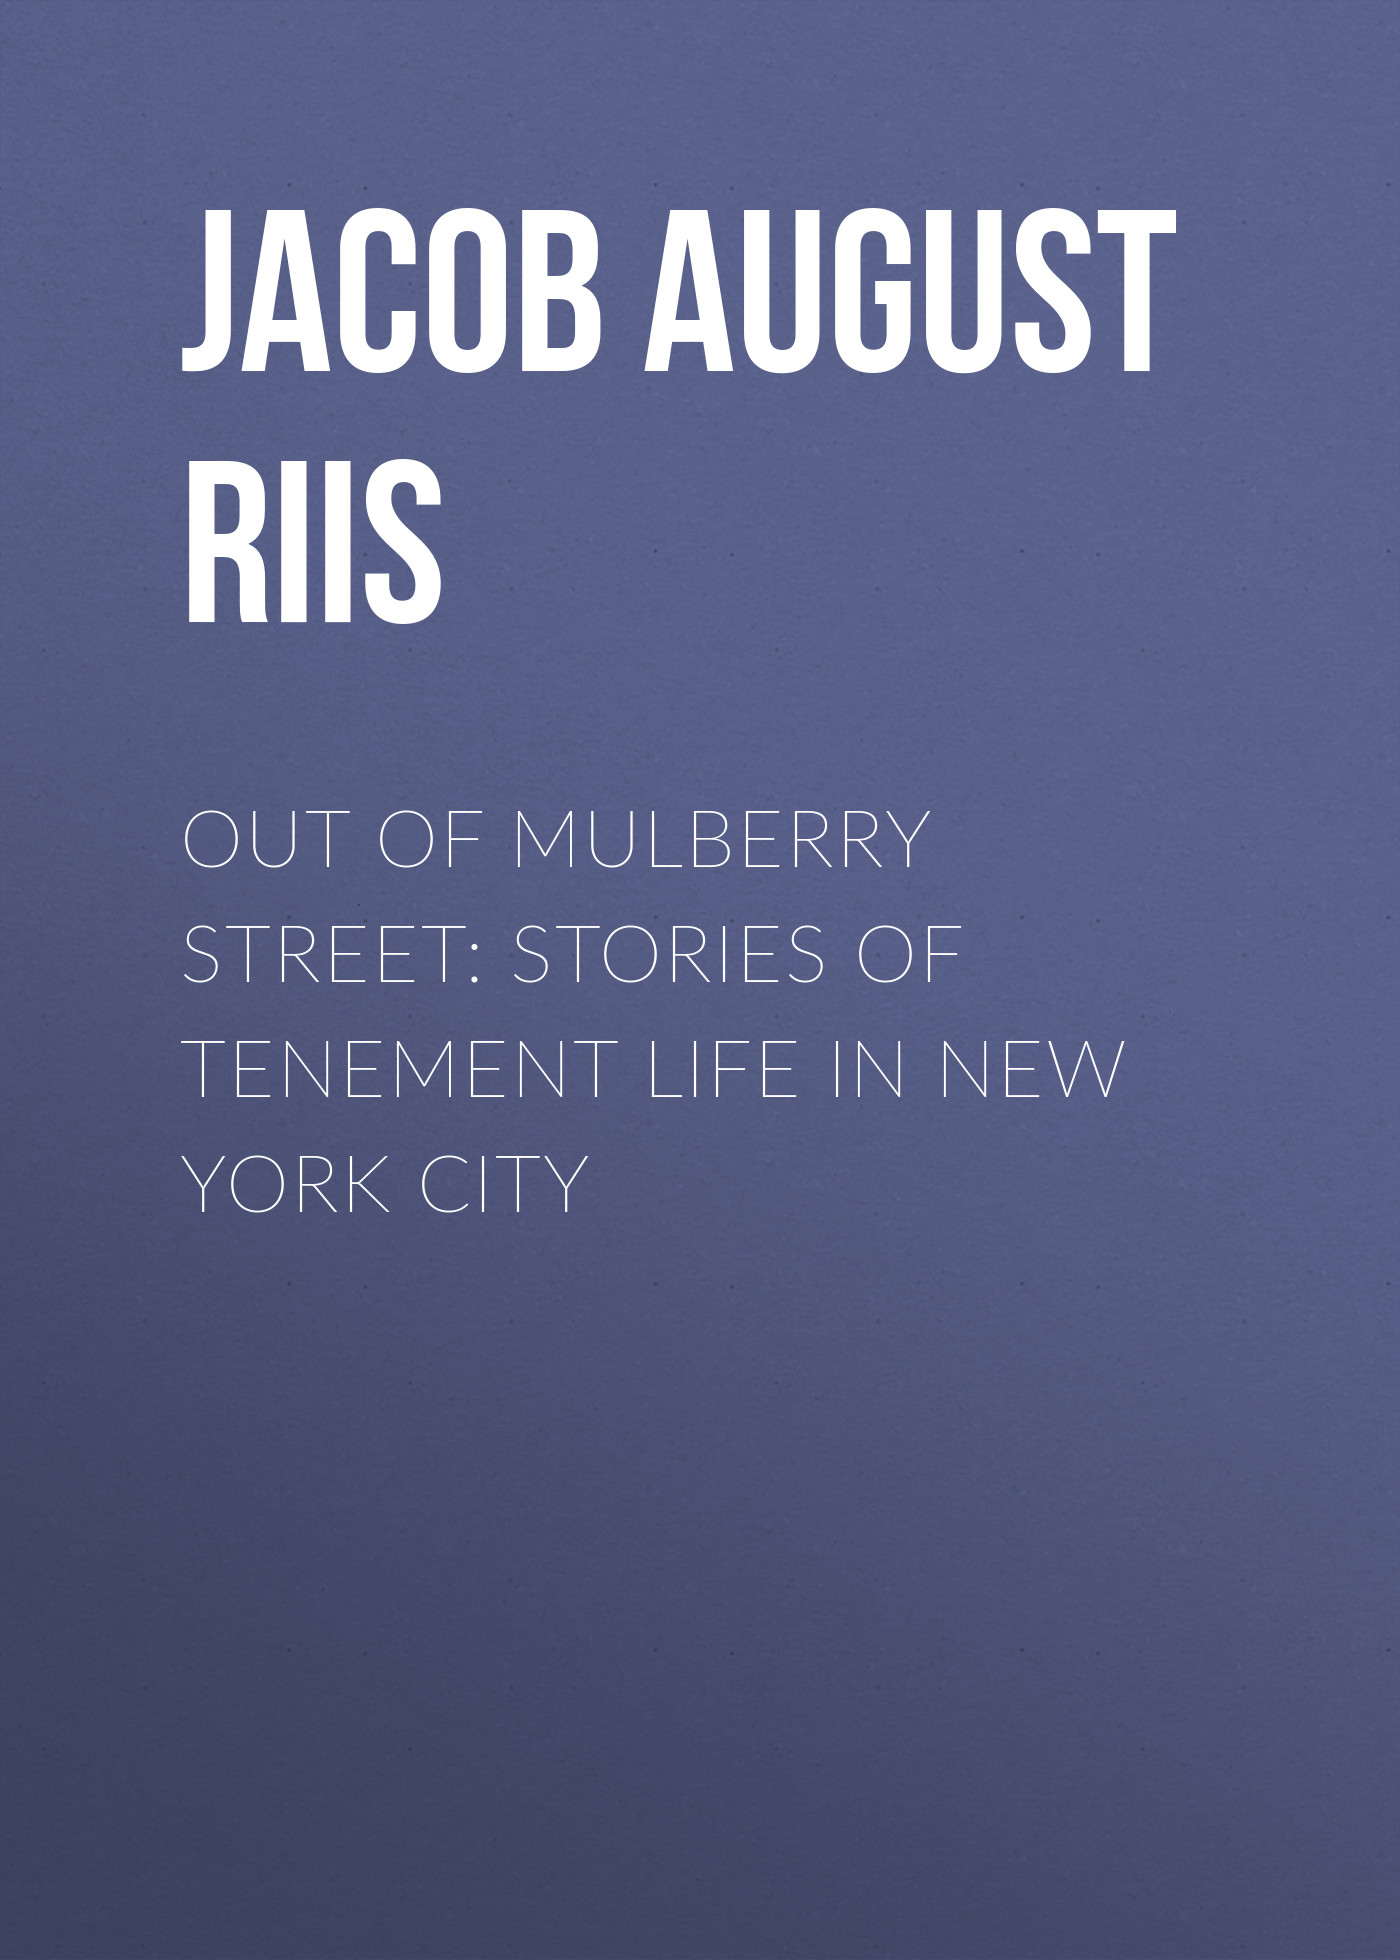 Jacob August Riis Out of Mulberry Street: Stories of Tenement life in New York City